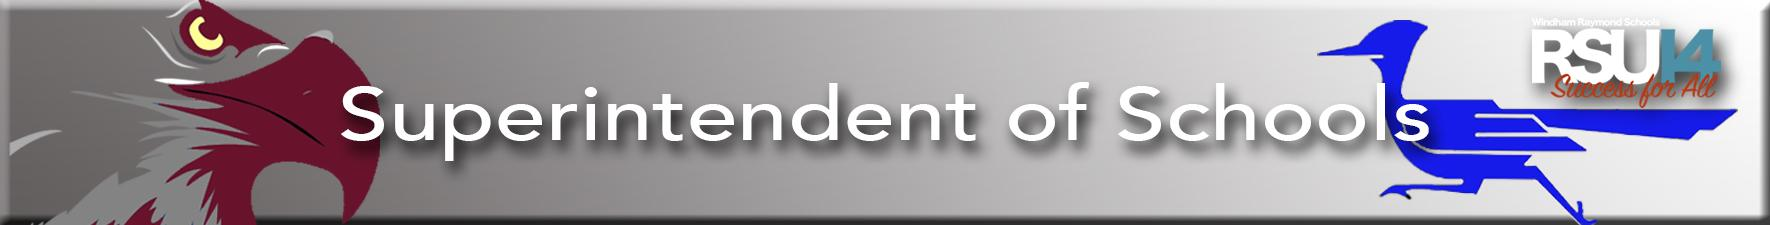 Superintendents page banner